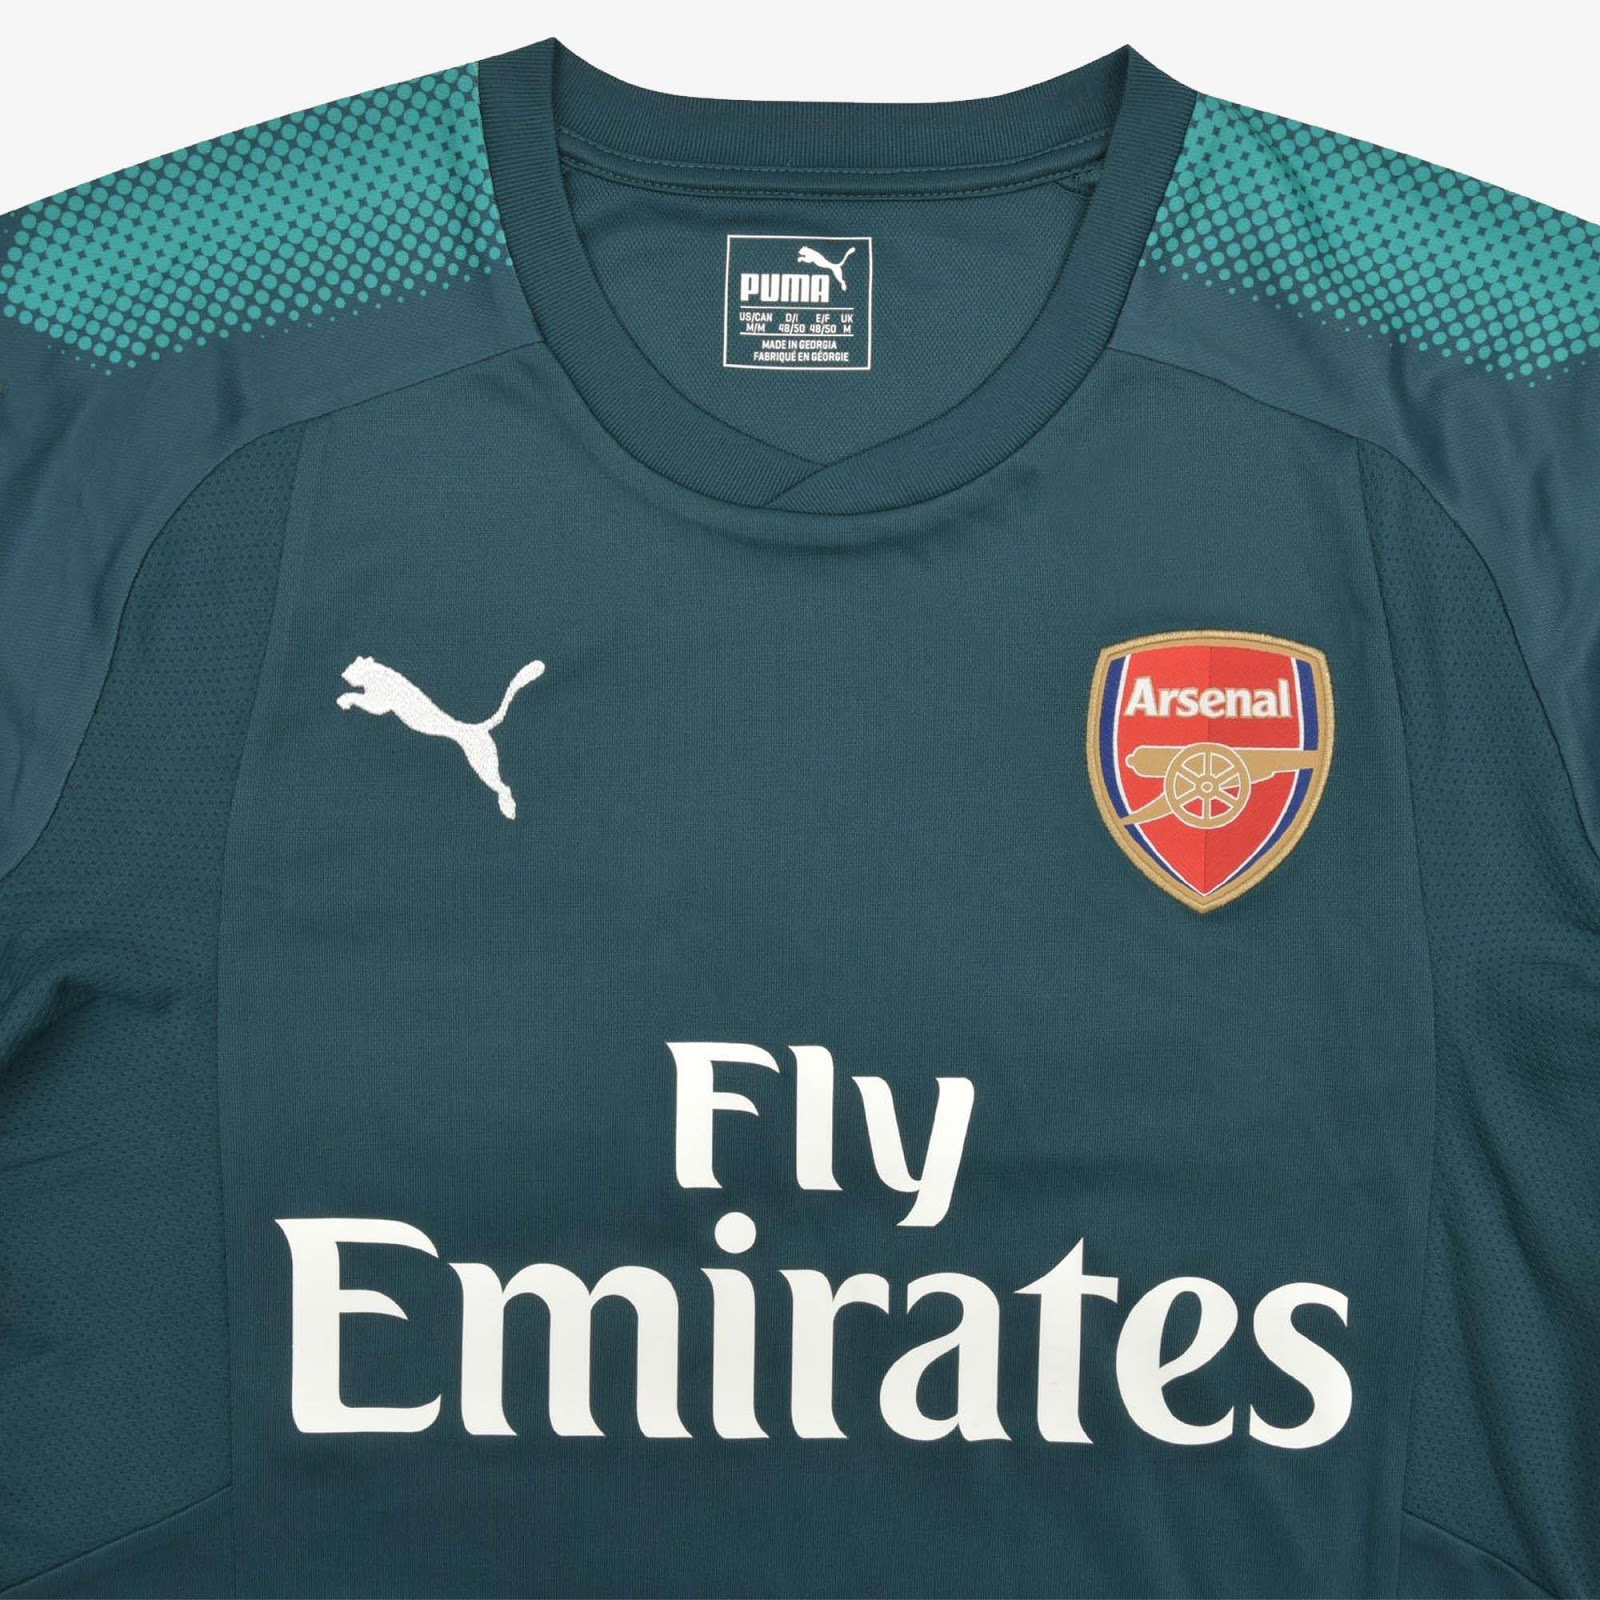 quite nice 0e6f3 166df arsenal away goalkeeper kit on sale > OFF79% Discounts